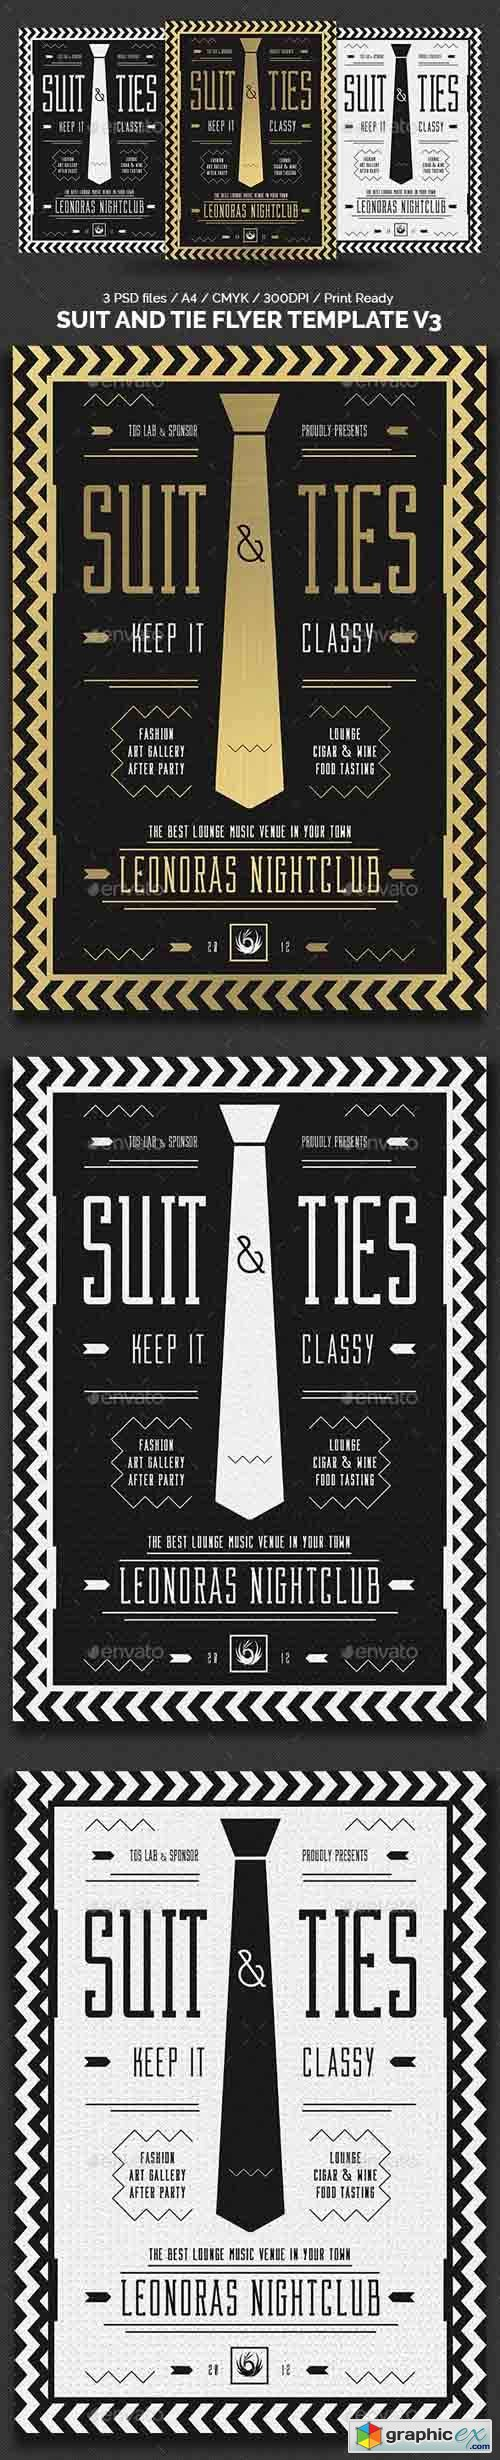 Suit and Tie Flyer Template V3